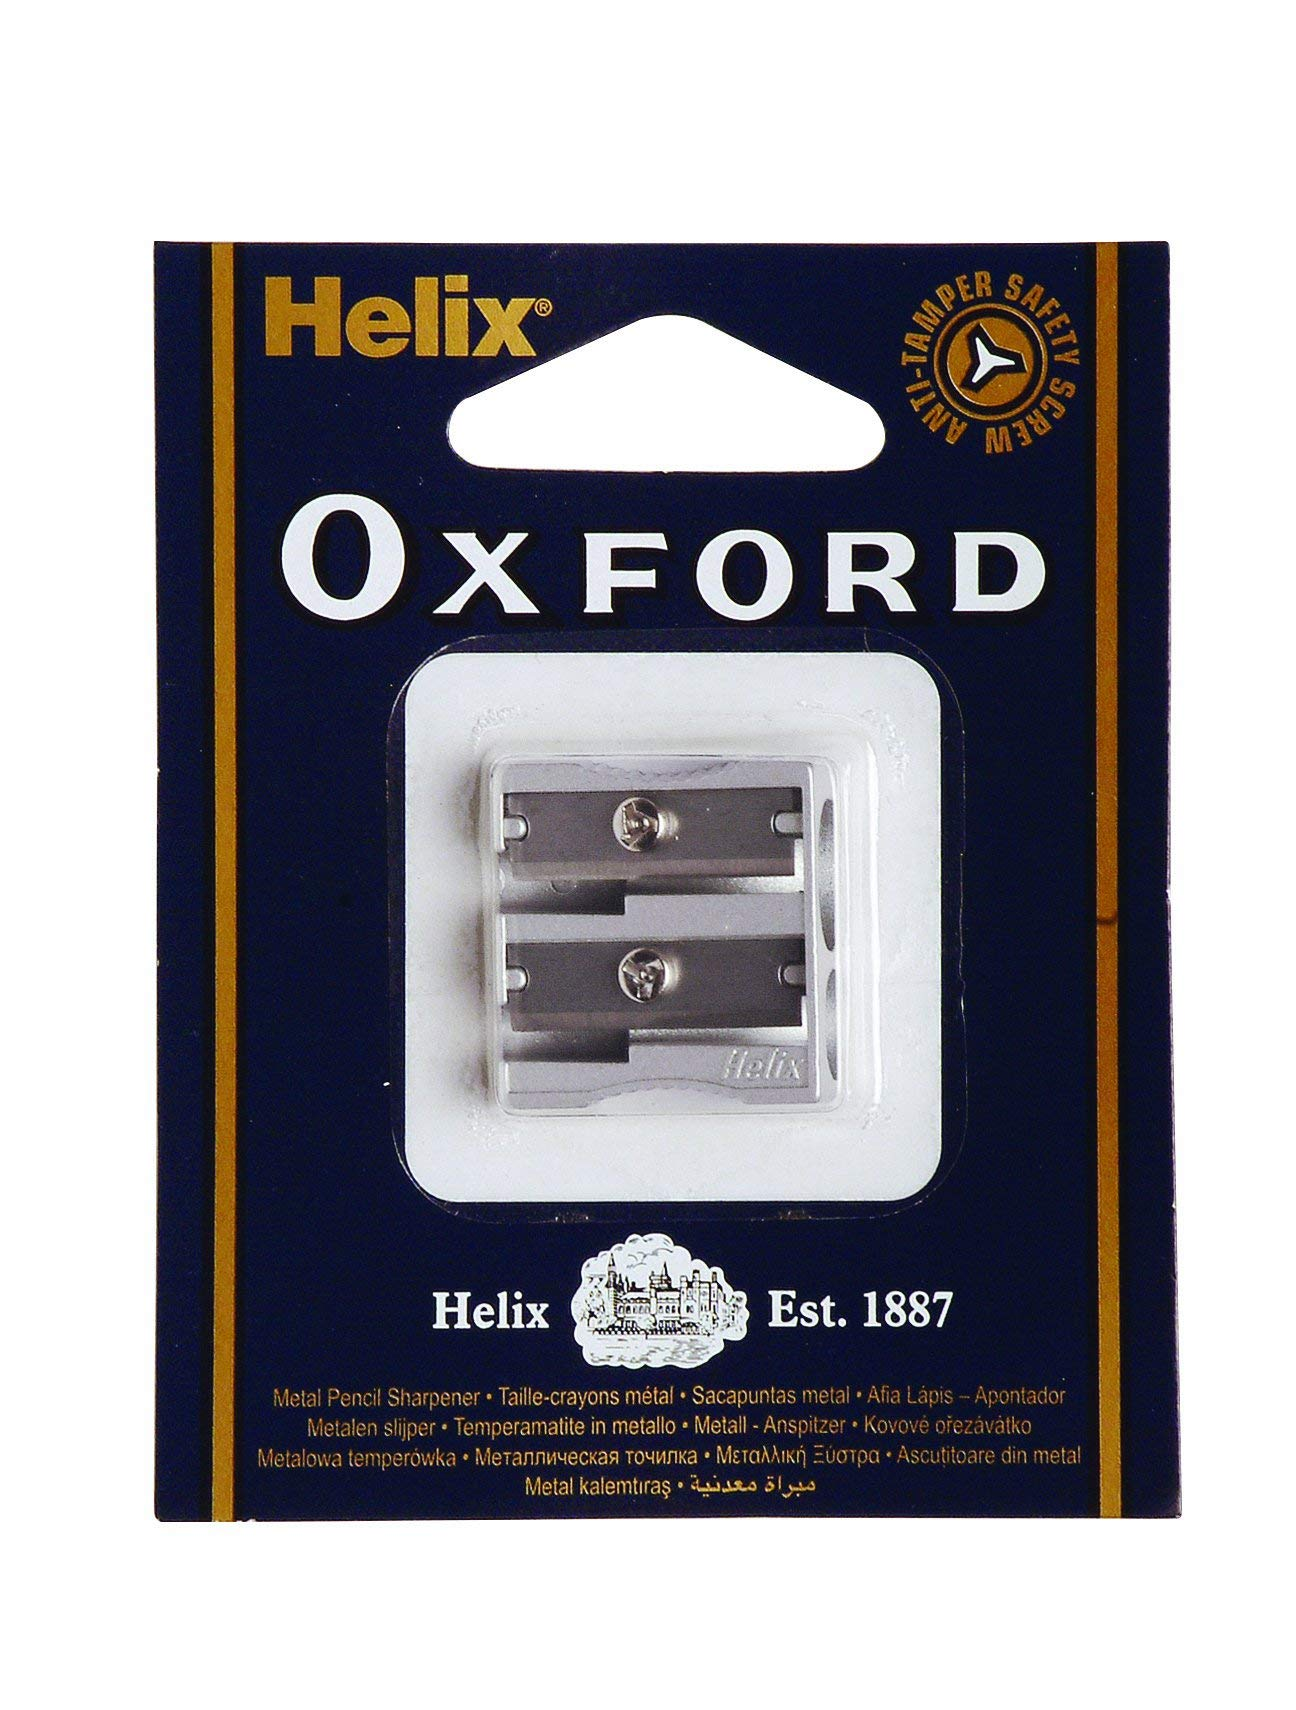 Helix Oxford Double Hole Metal Pencil Sharpener